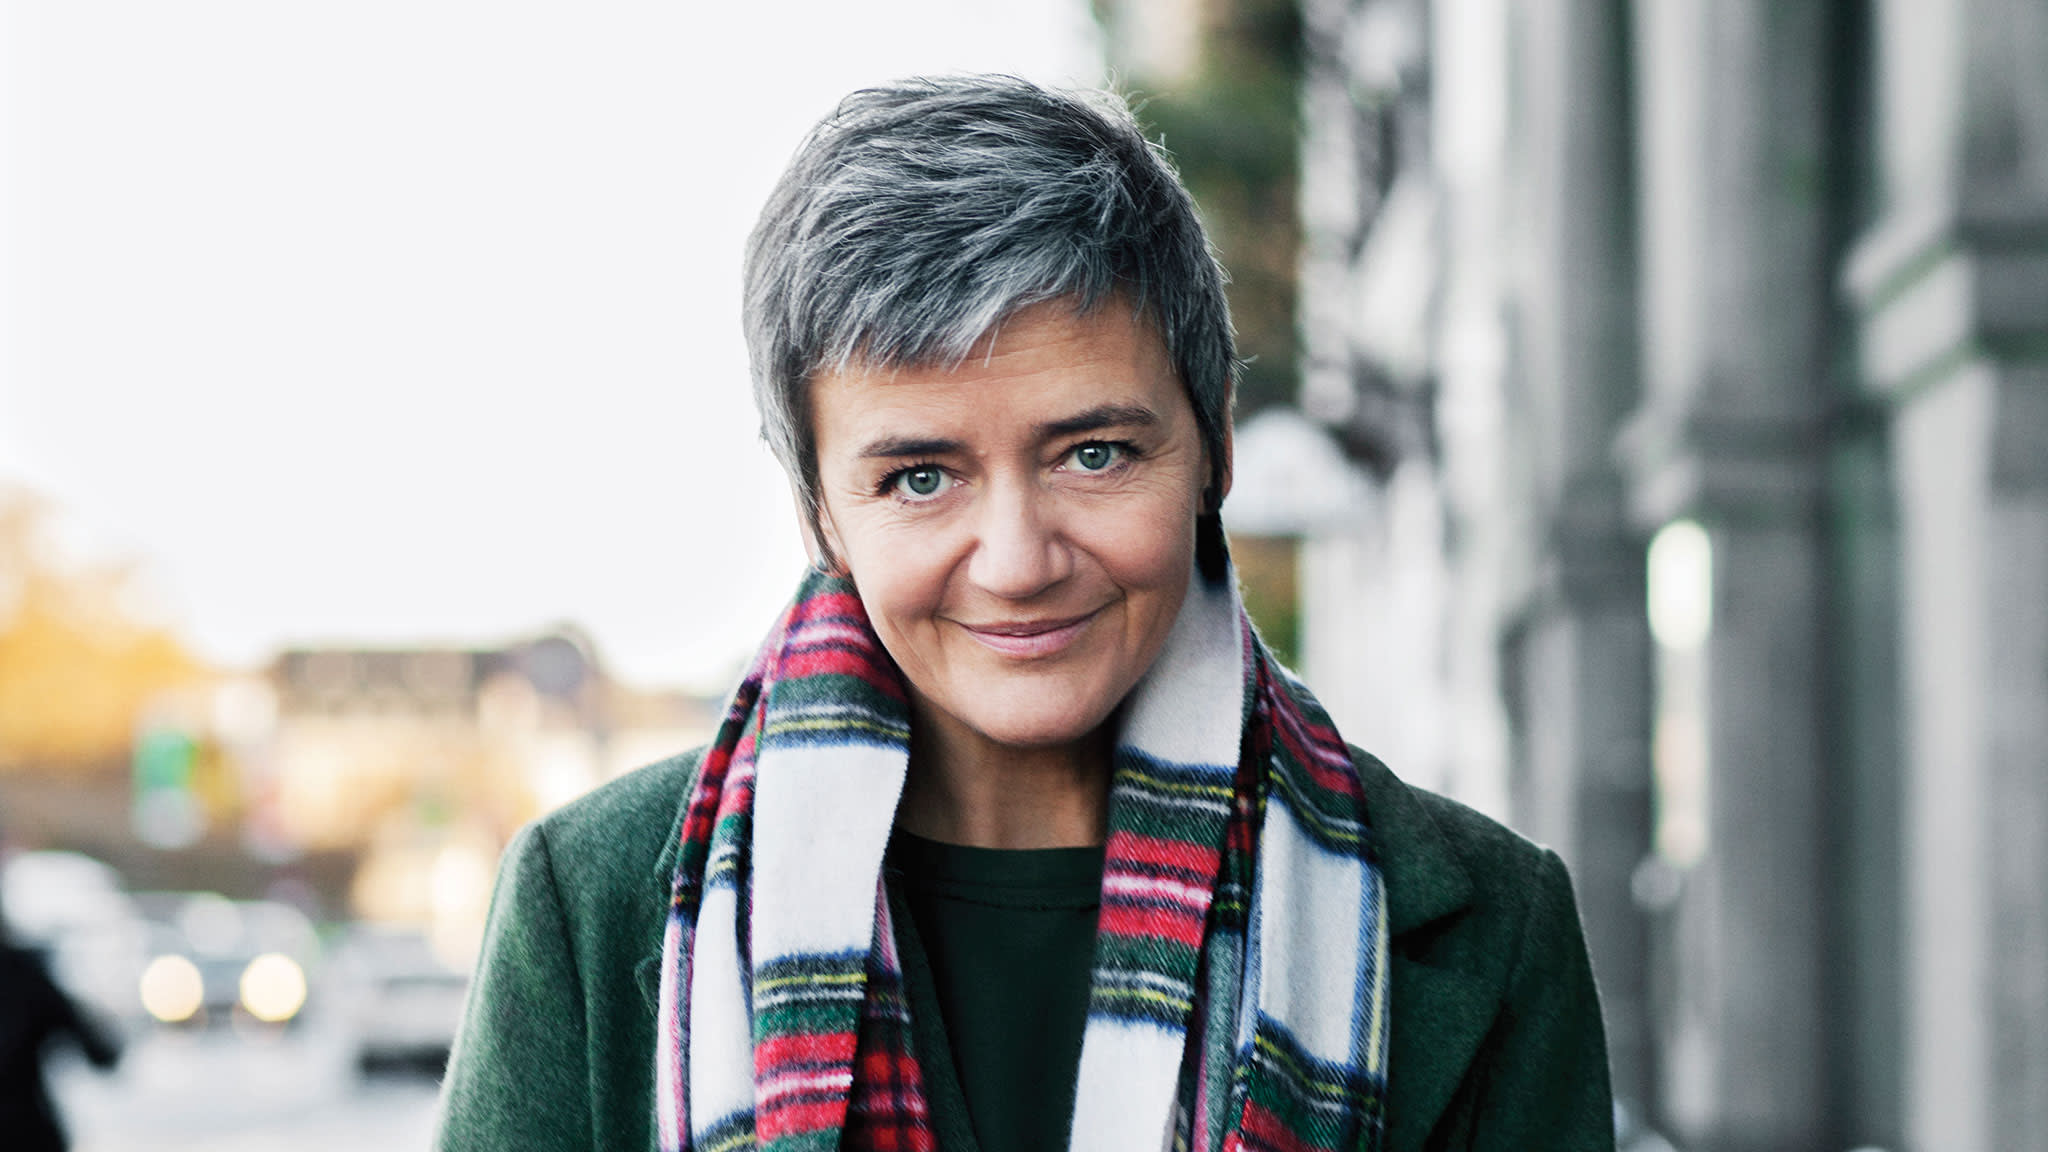 Margrethe Vestager The Woman Who Took The Fight To Apple